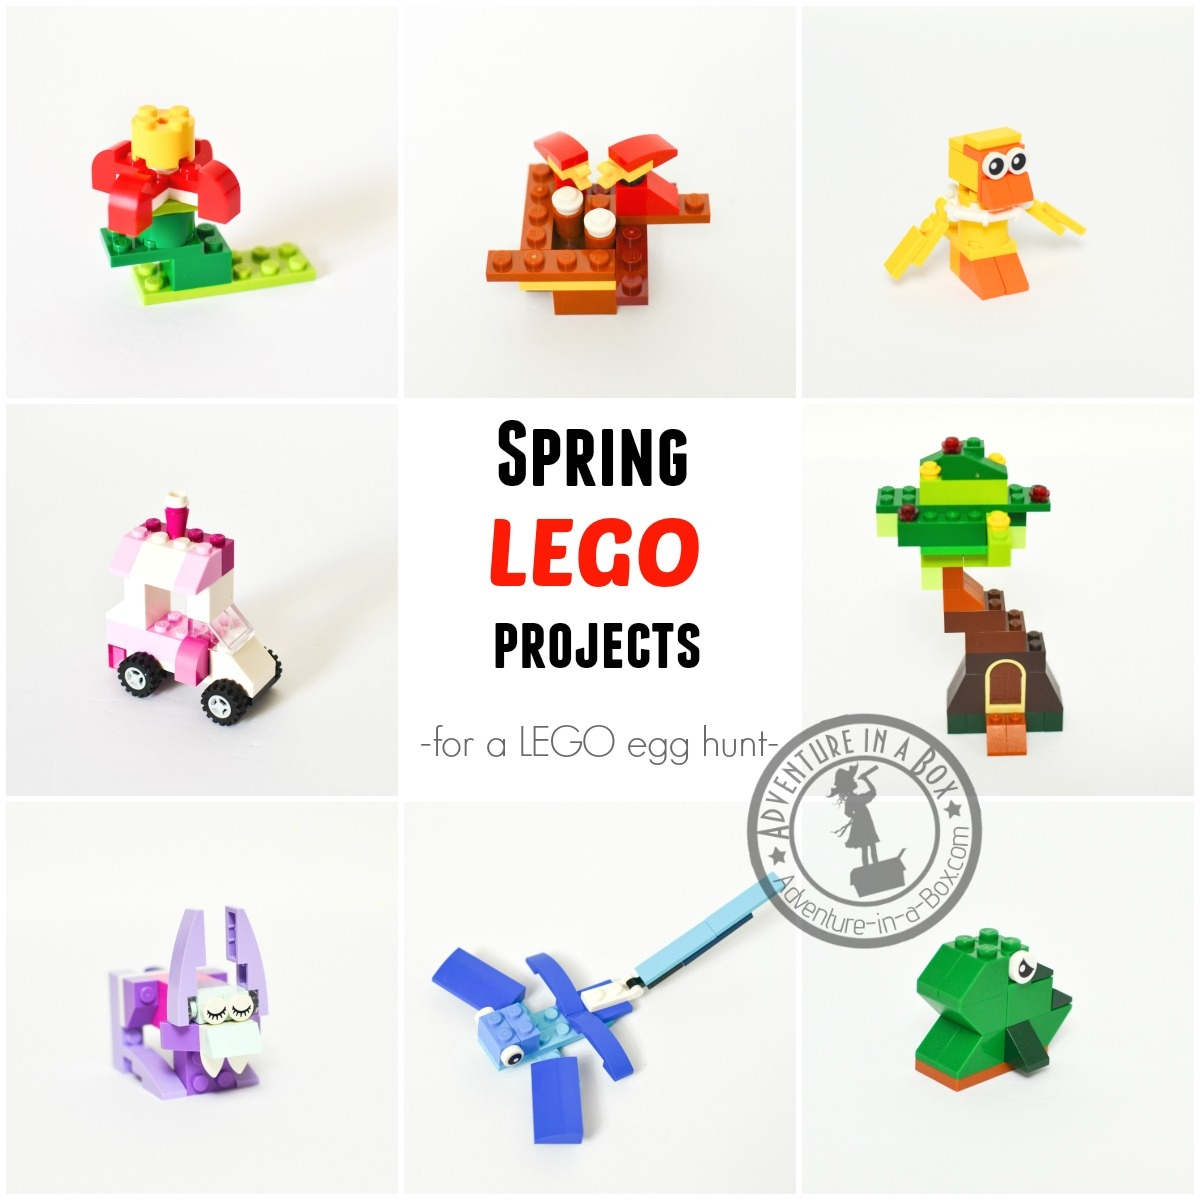 12 Spring Lego Projects For Easter Egg Hunt Or Basket | Adventure In - Free Printable Lego Instructions